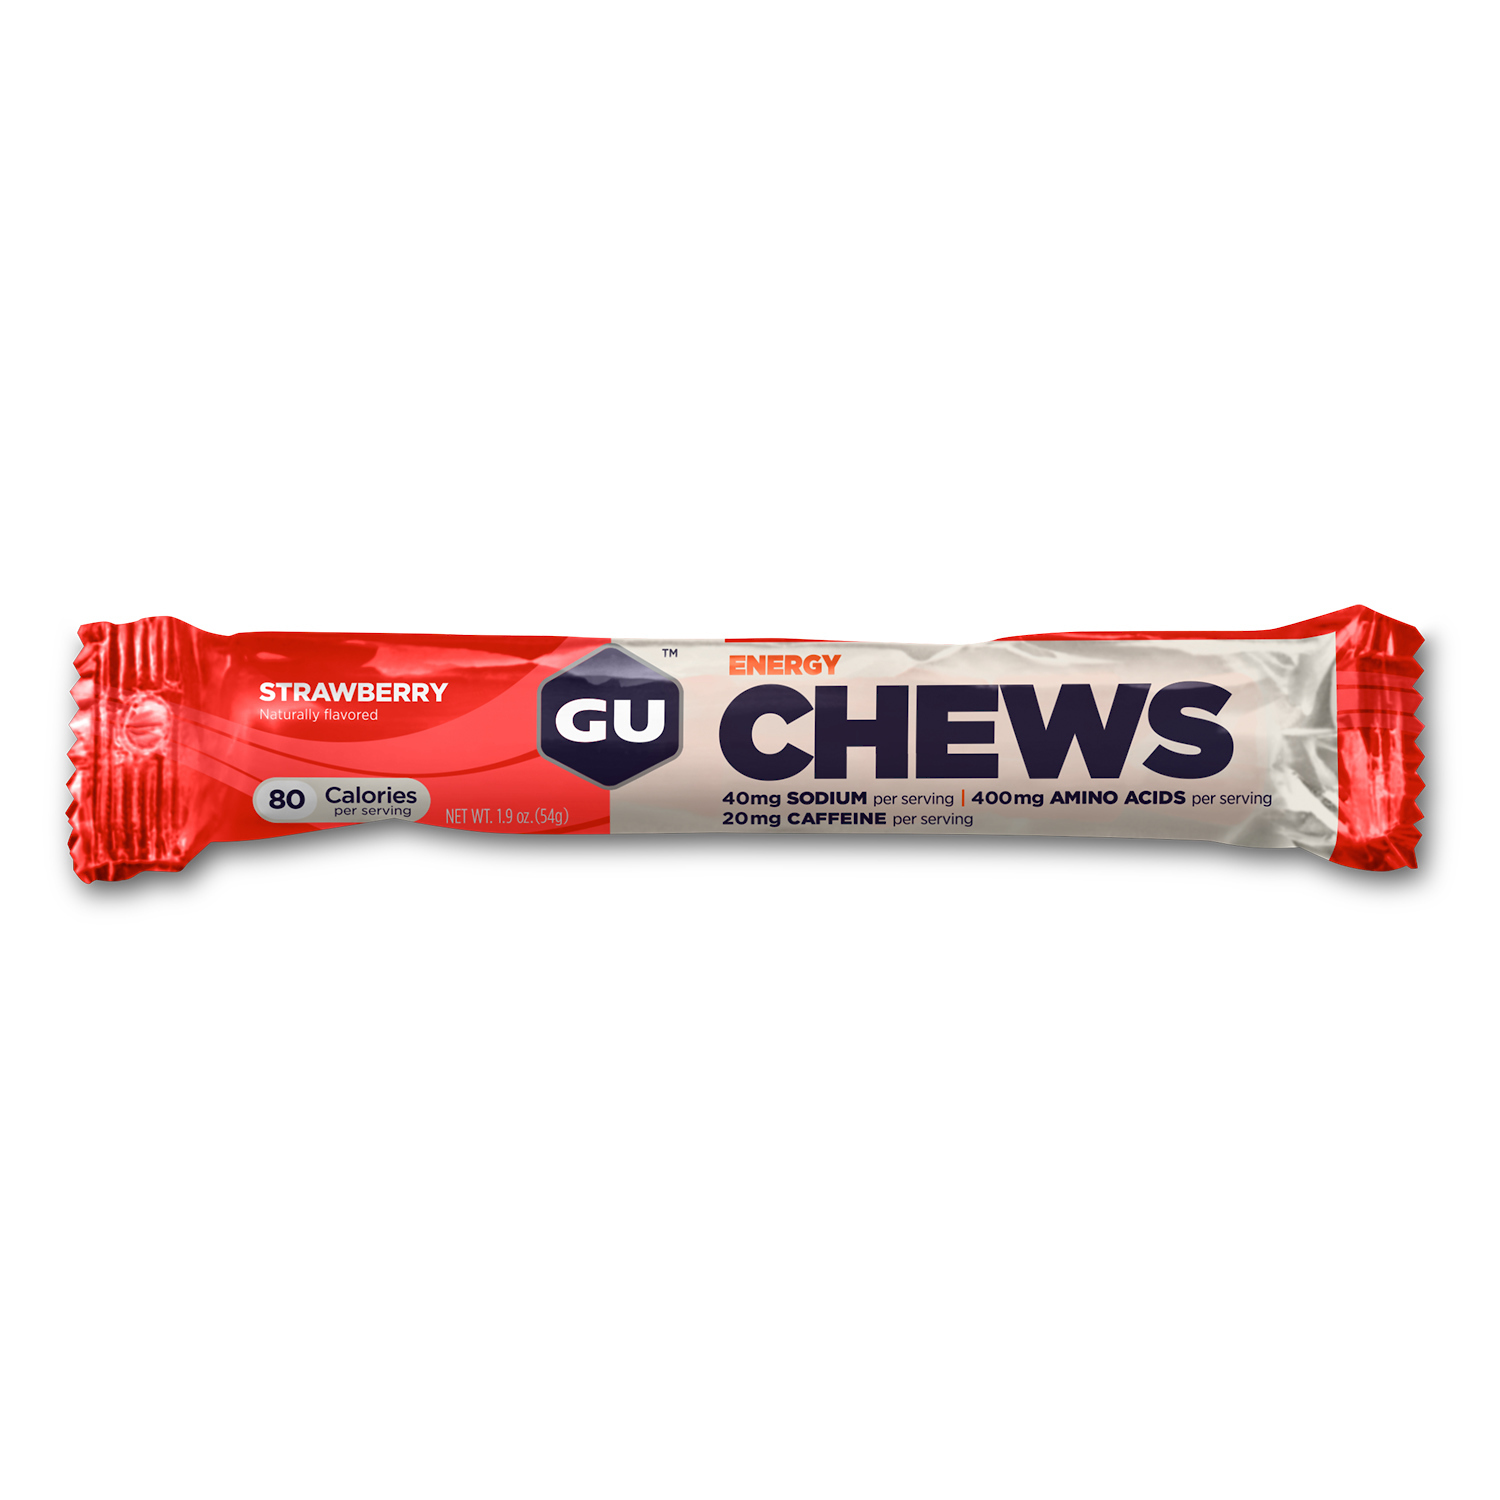 Strawberry, Chews, 18 Pkt Box (Double serve)